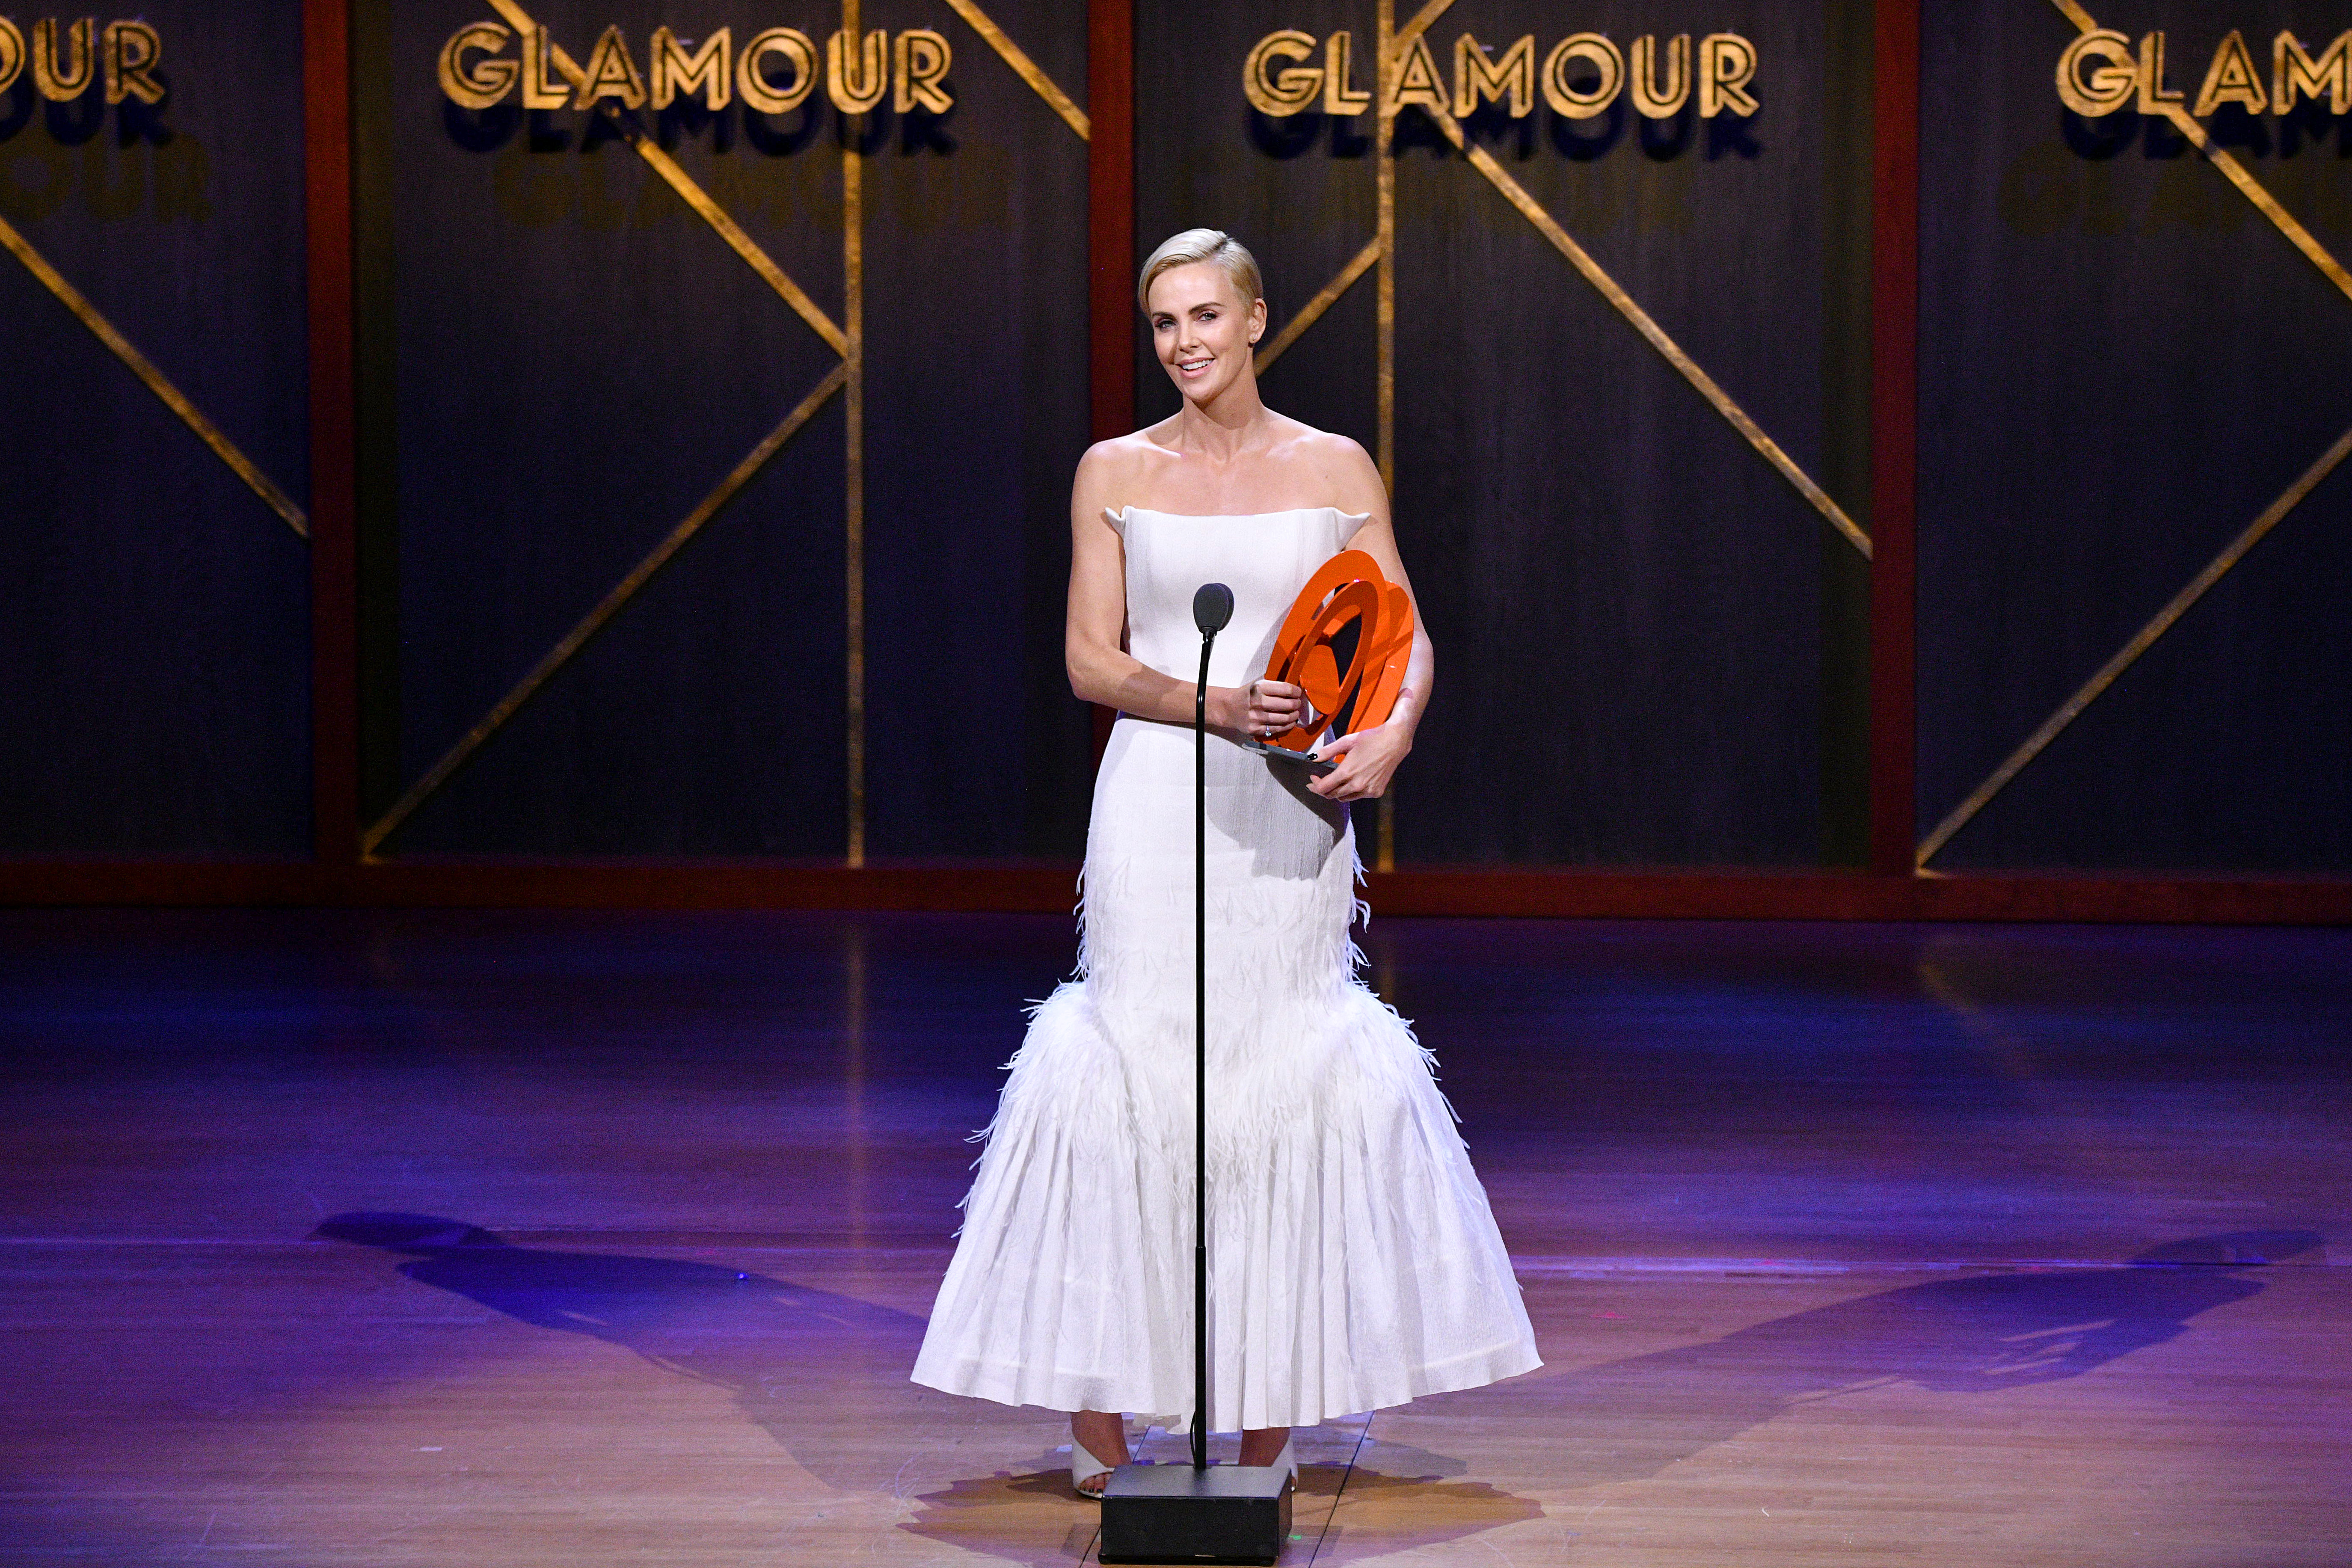 Charlize Theron speaks onstage at the 2019 Glamour Women Of The Year Awards at Alice Tully Hall on November 11, 2019 in New York City. (Photo by Bryan Bedder/Getty Images for Glamour )